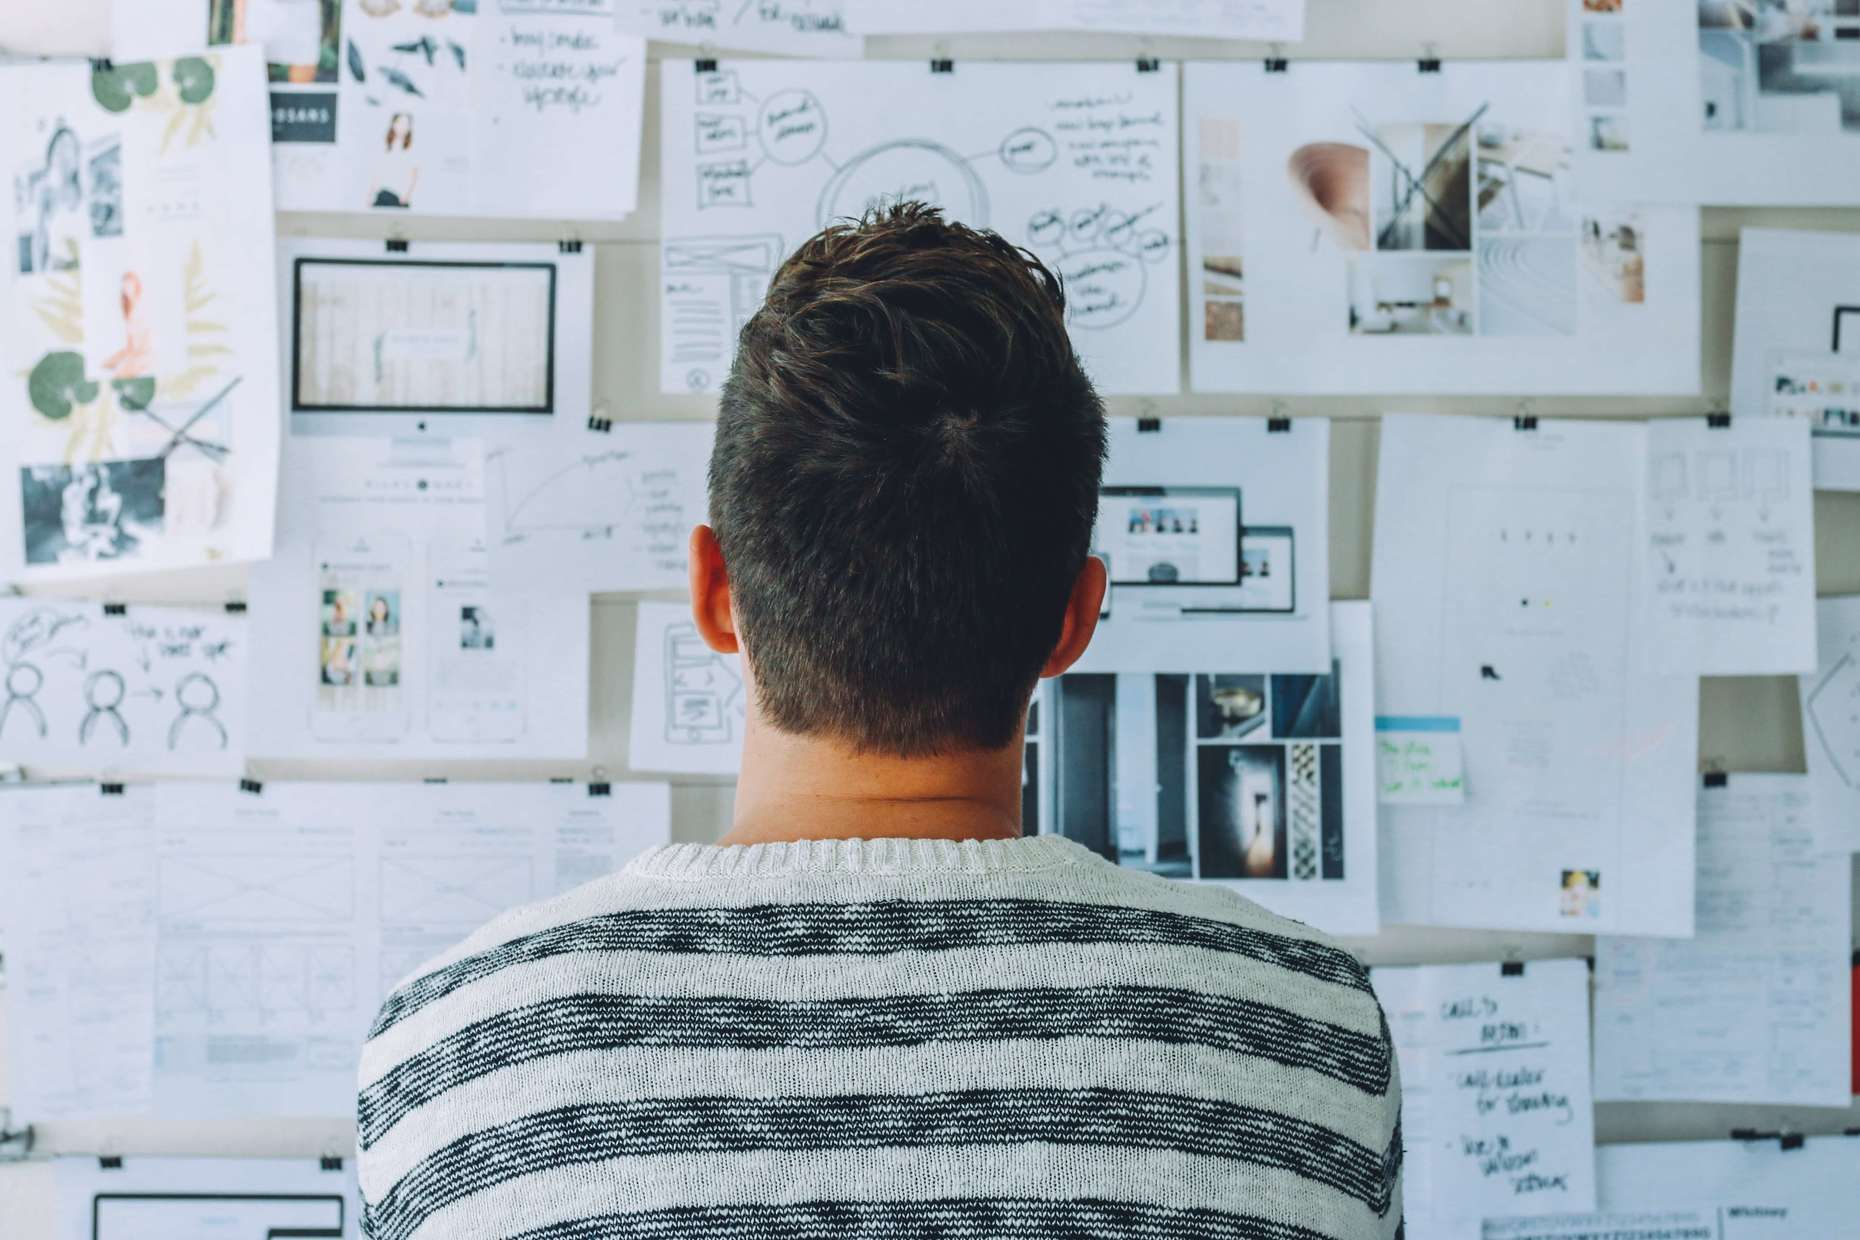 Man looking at a wall full of IT project planning documents